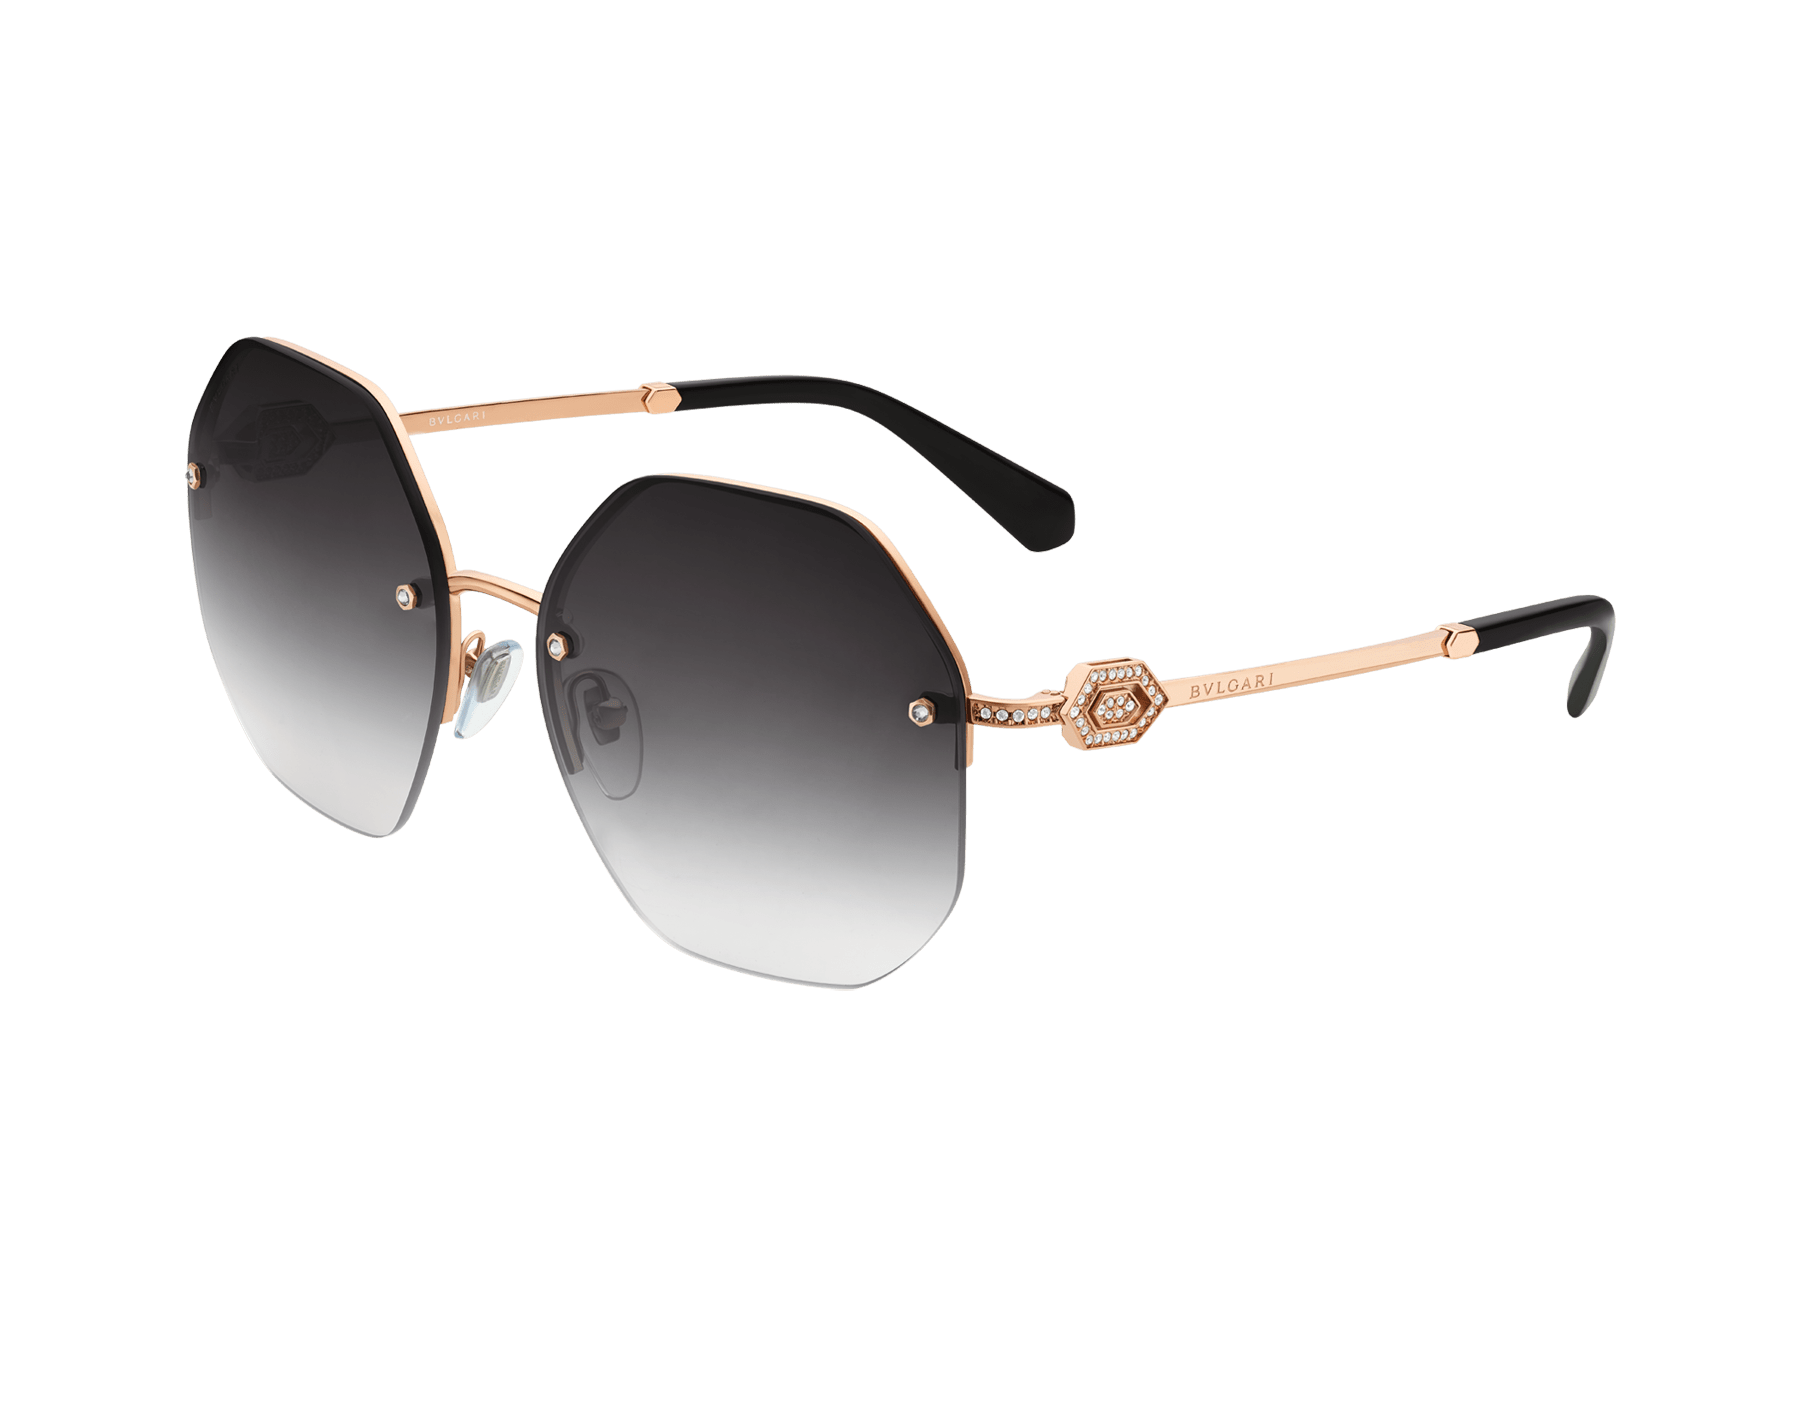 Bvlgari Serpenti oversized metal sunglasses with Serpenti openwork metal décor with crystals. 903851 image 1